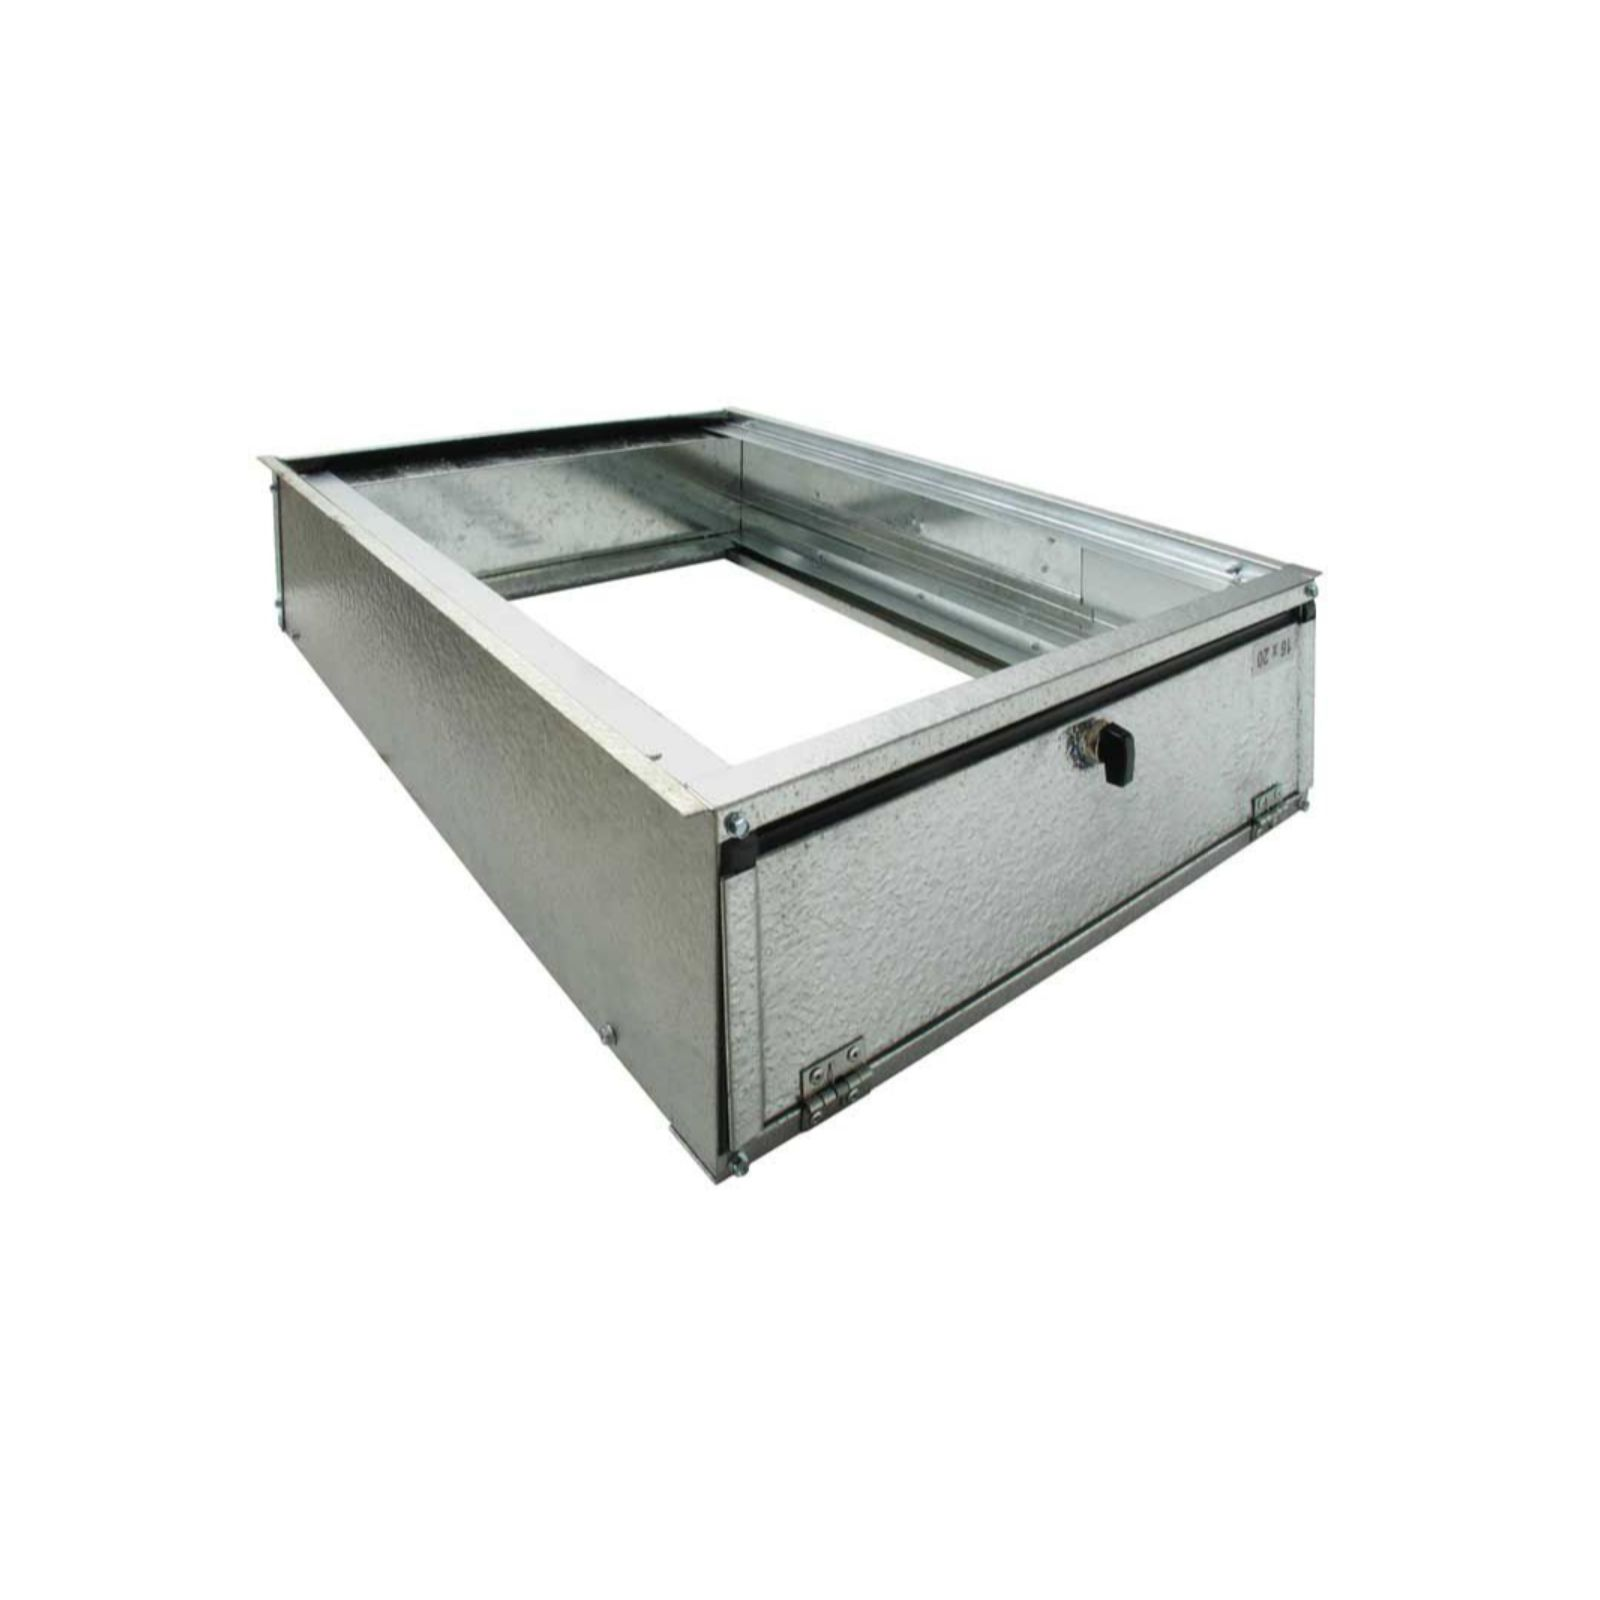 McDaniel 54-1620-E6 - Filter Base - Electric Upflow 6 in.